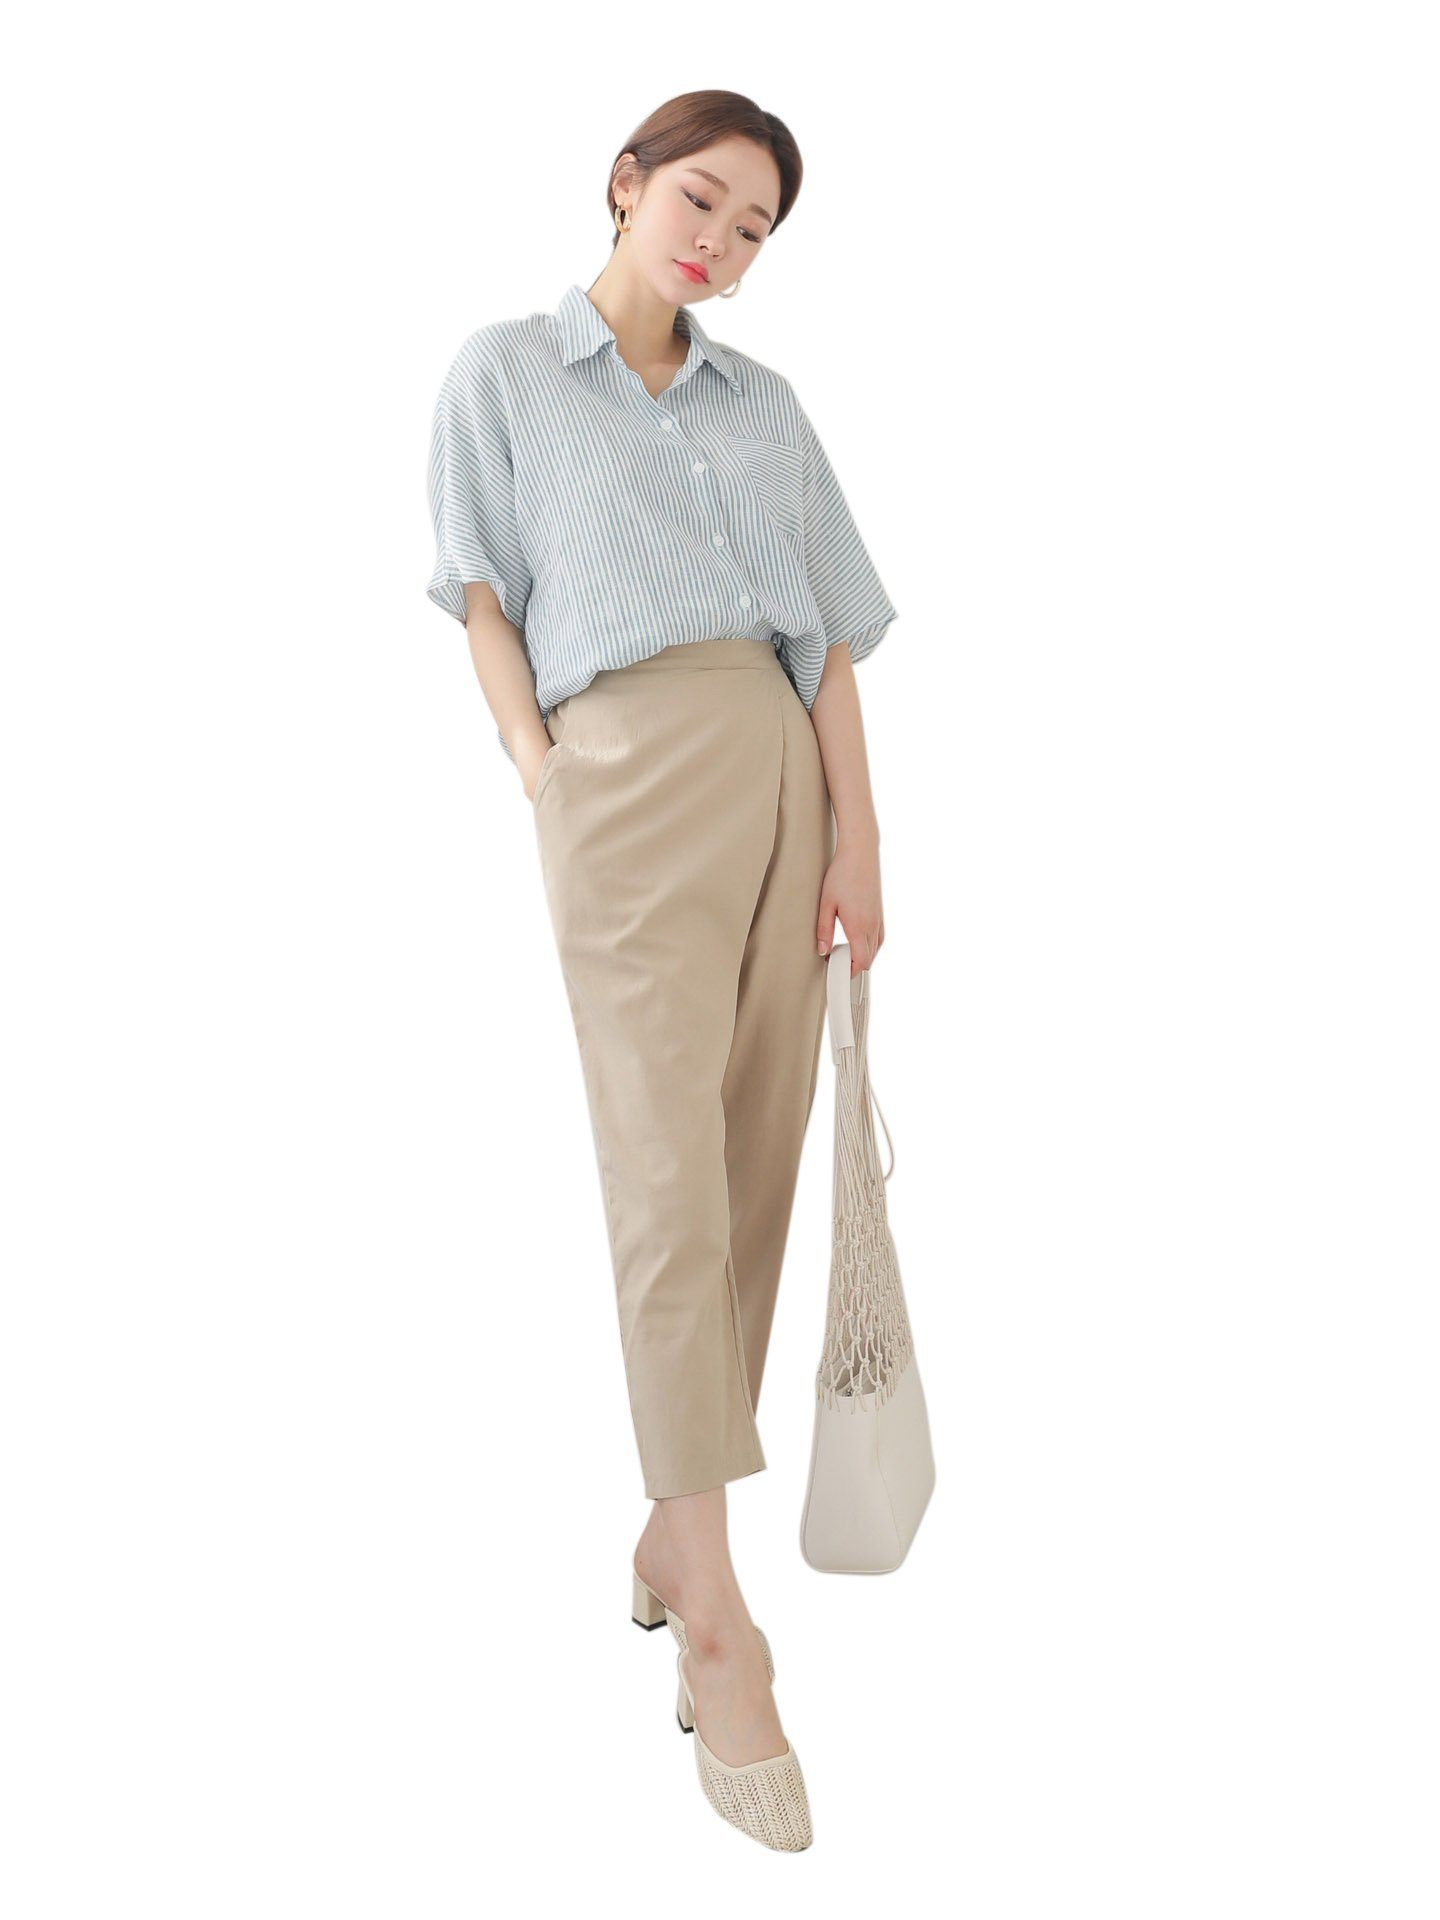 Blouse lin Manches Courtes Manches courtes Womens Clothing From Korea